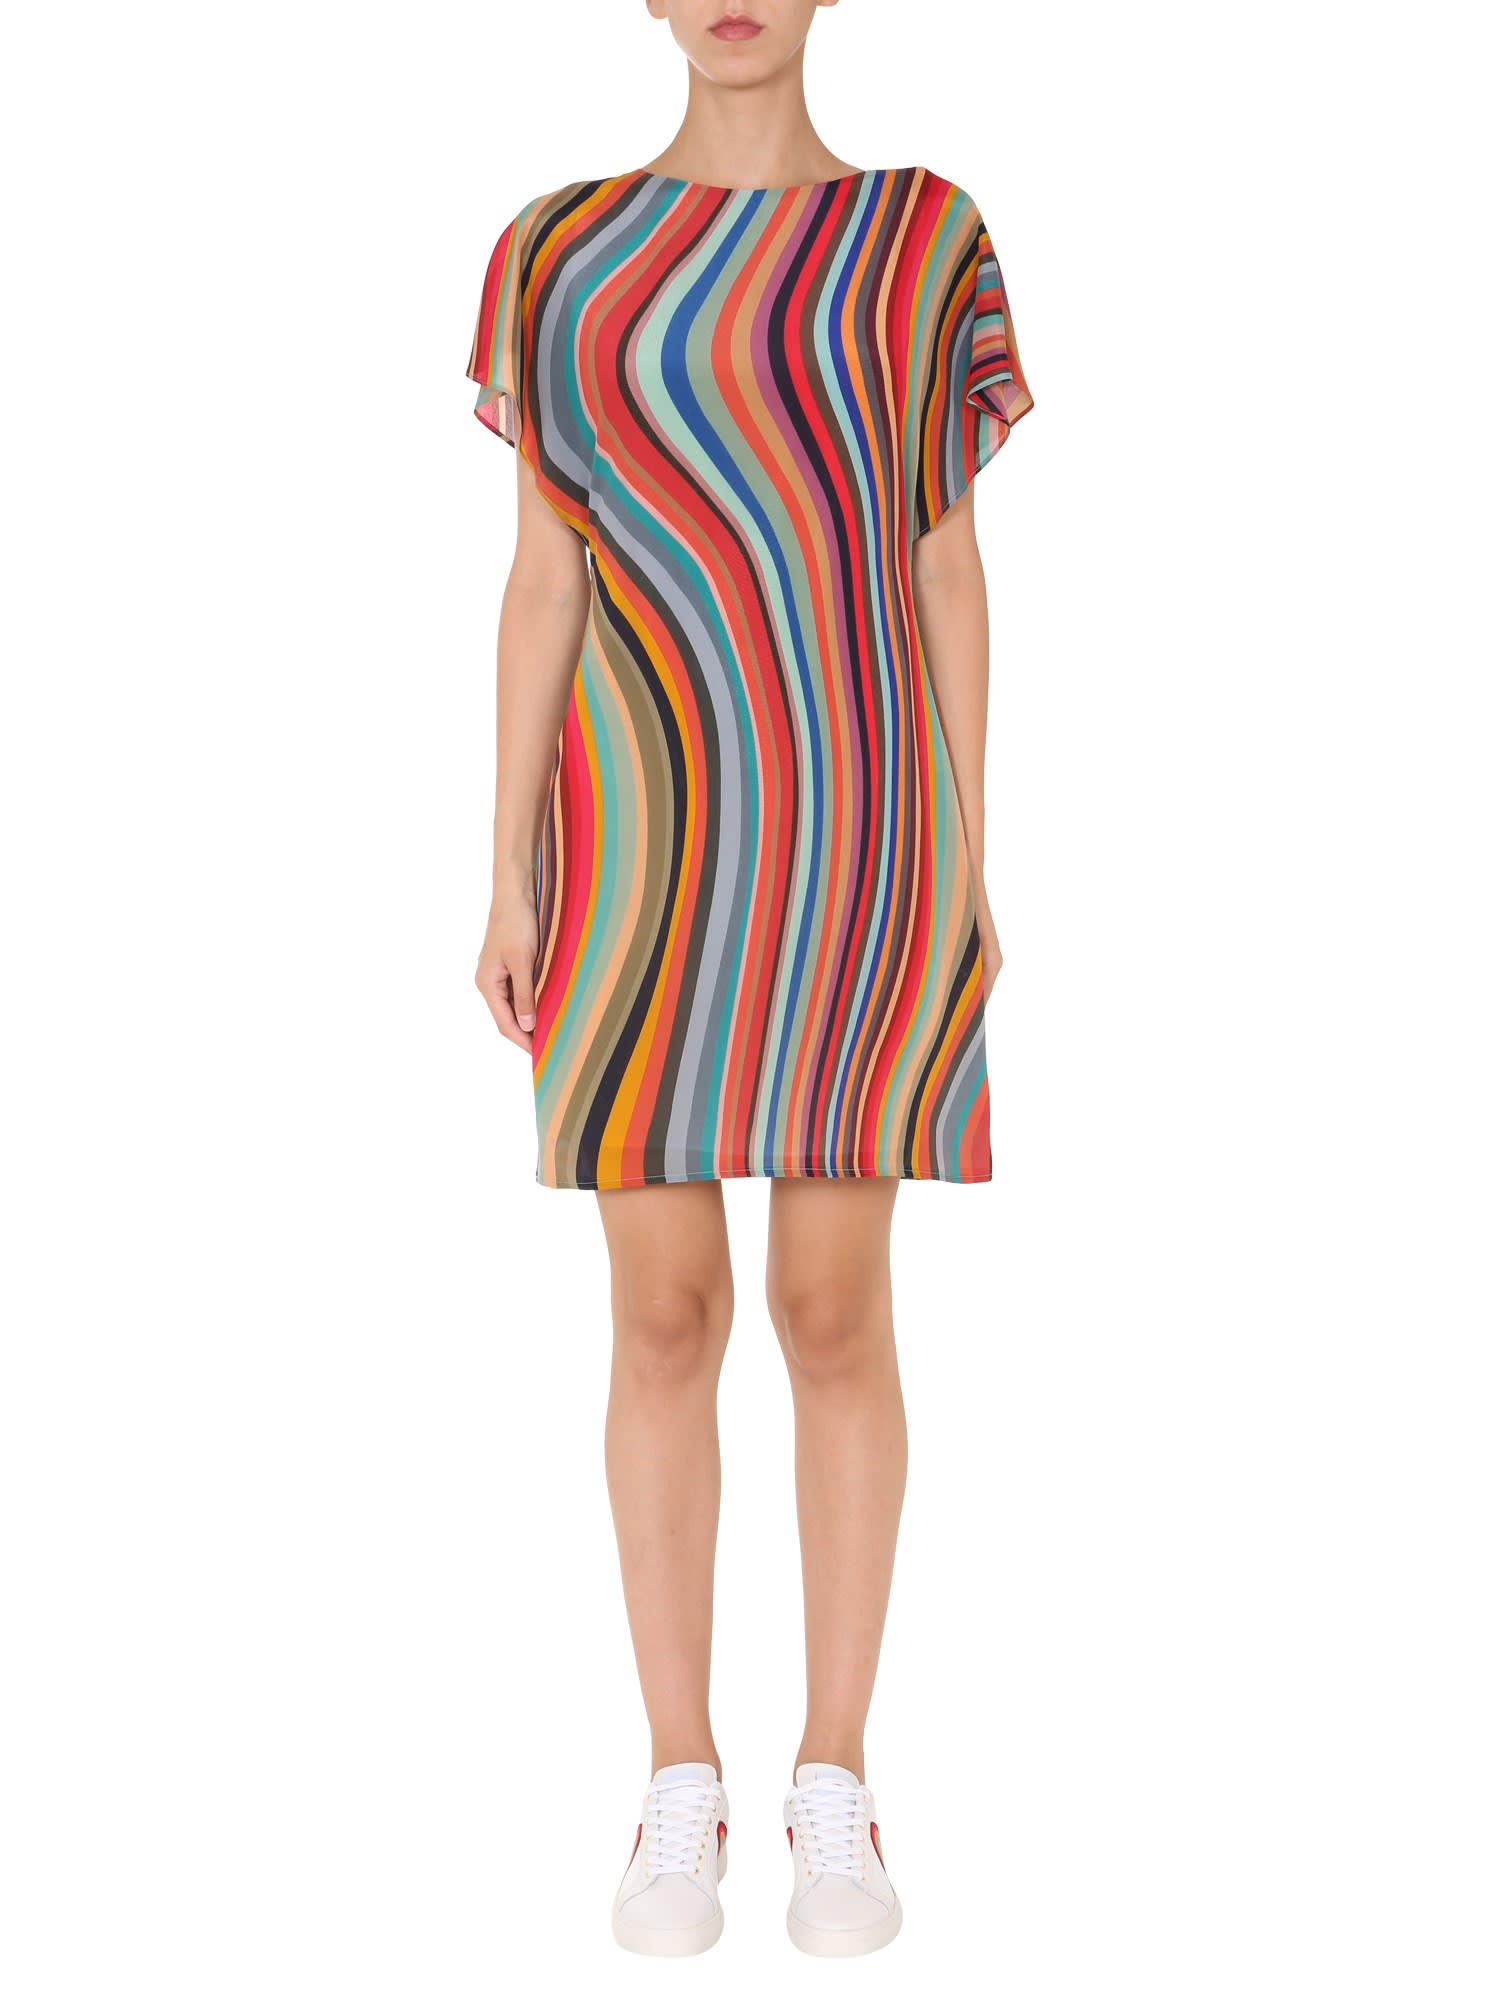 Ps By Paul Smith Dresses DRESS WITH STRIPED PATTERN